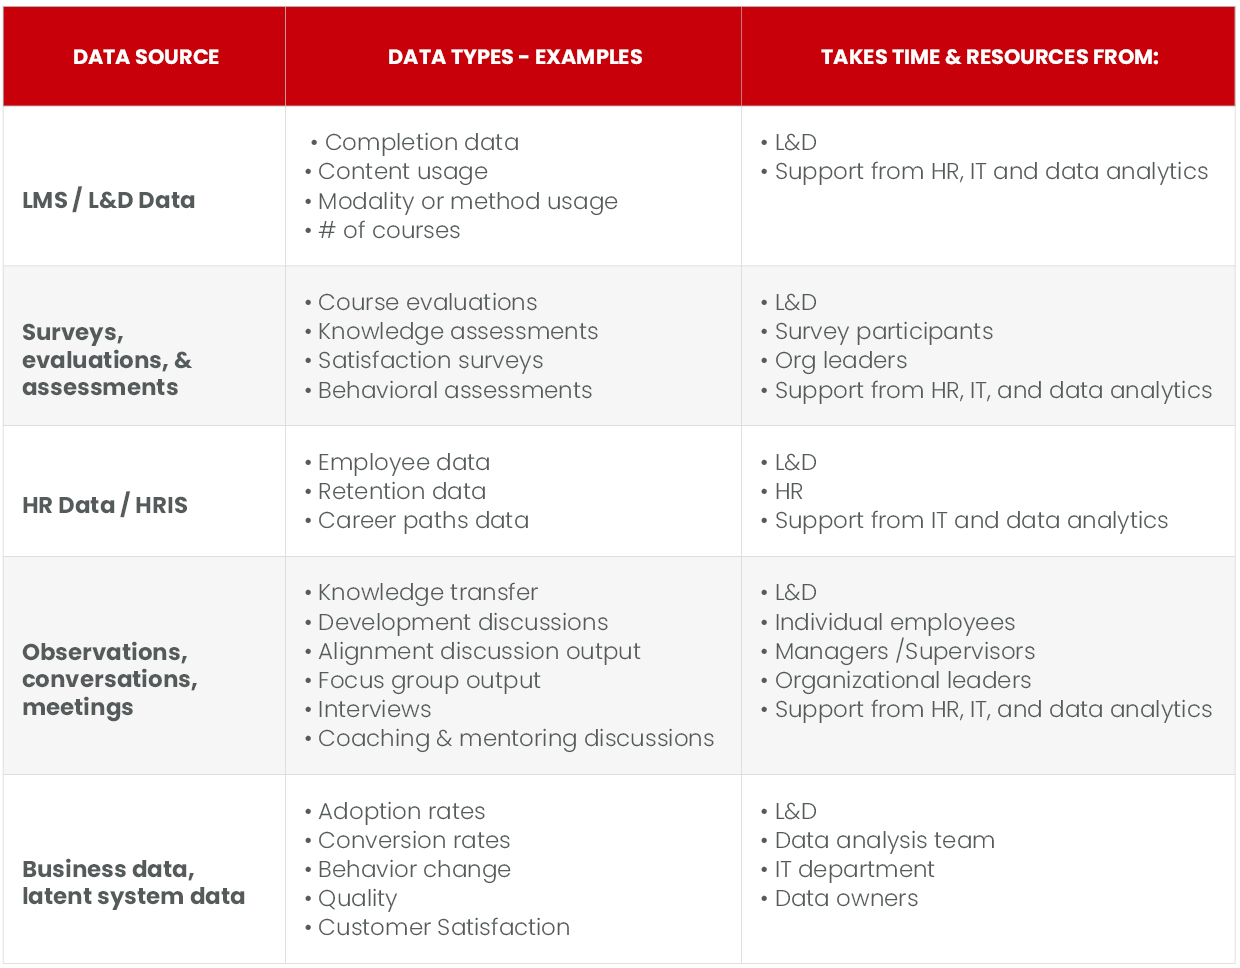 An incomplete (but probably useful) list of data sources and their tax on the organization